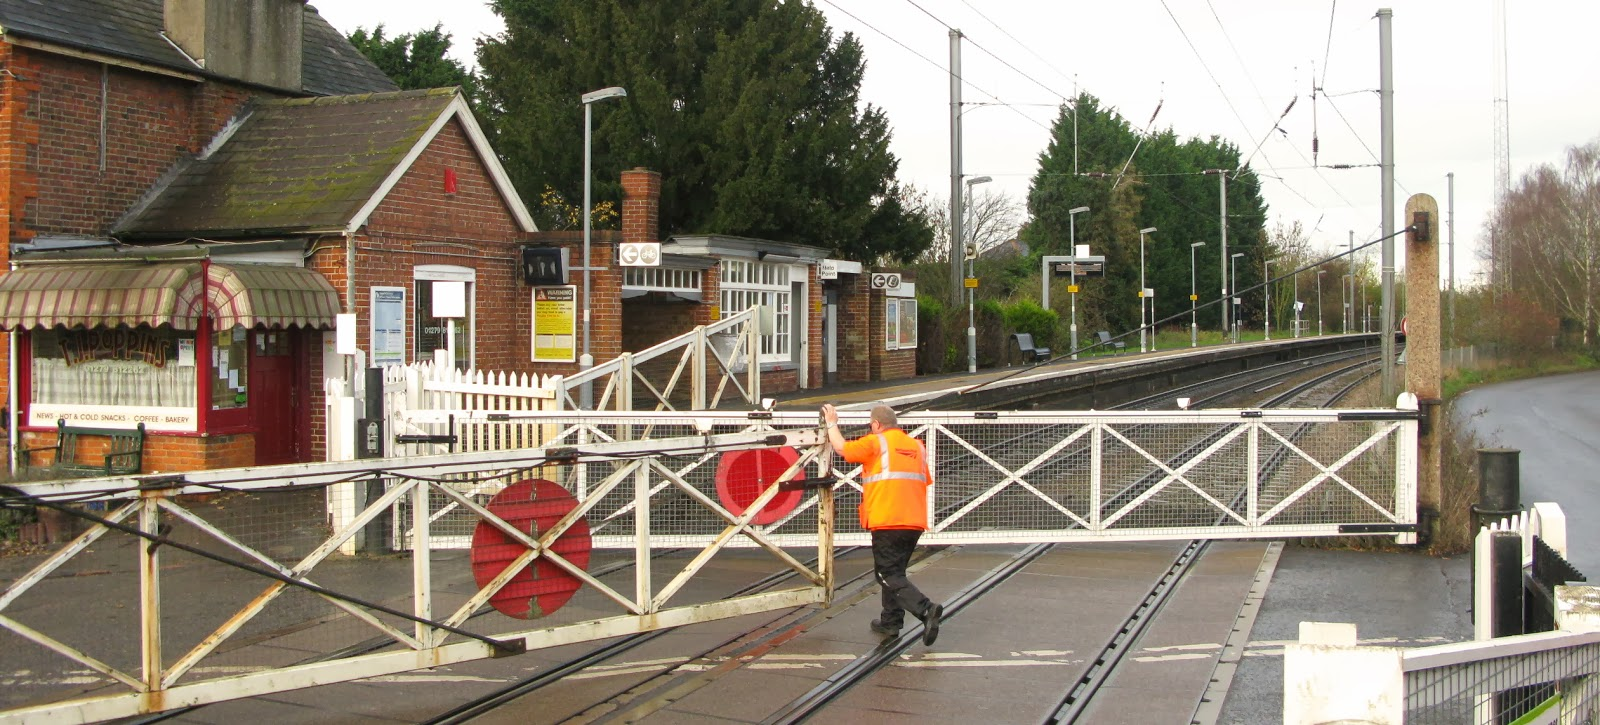 Paul coleman s london intelligence level crossing safety